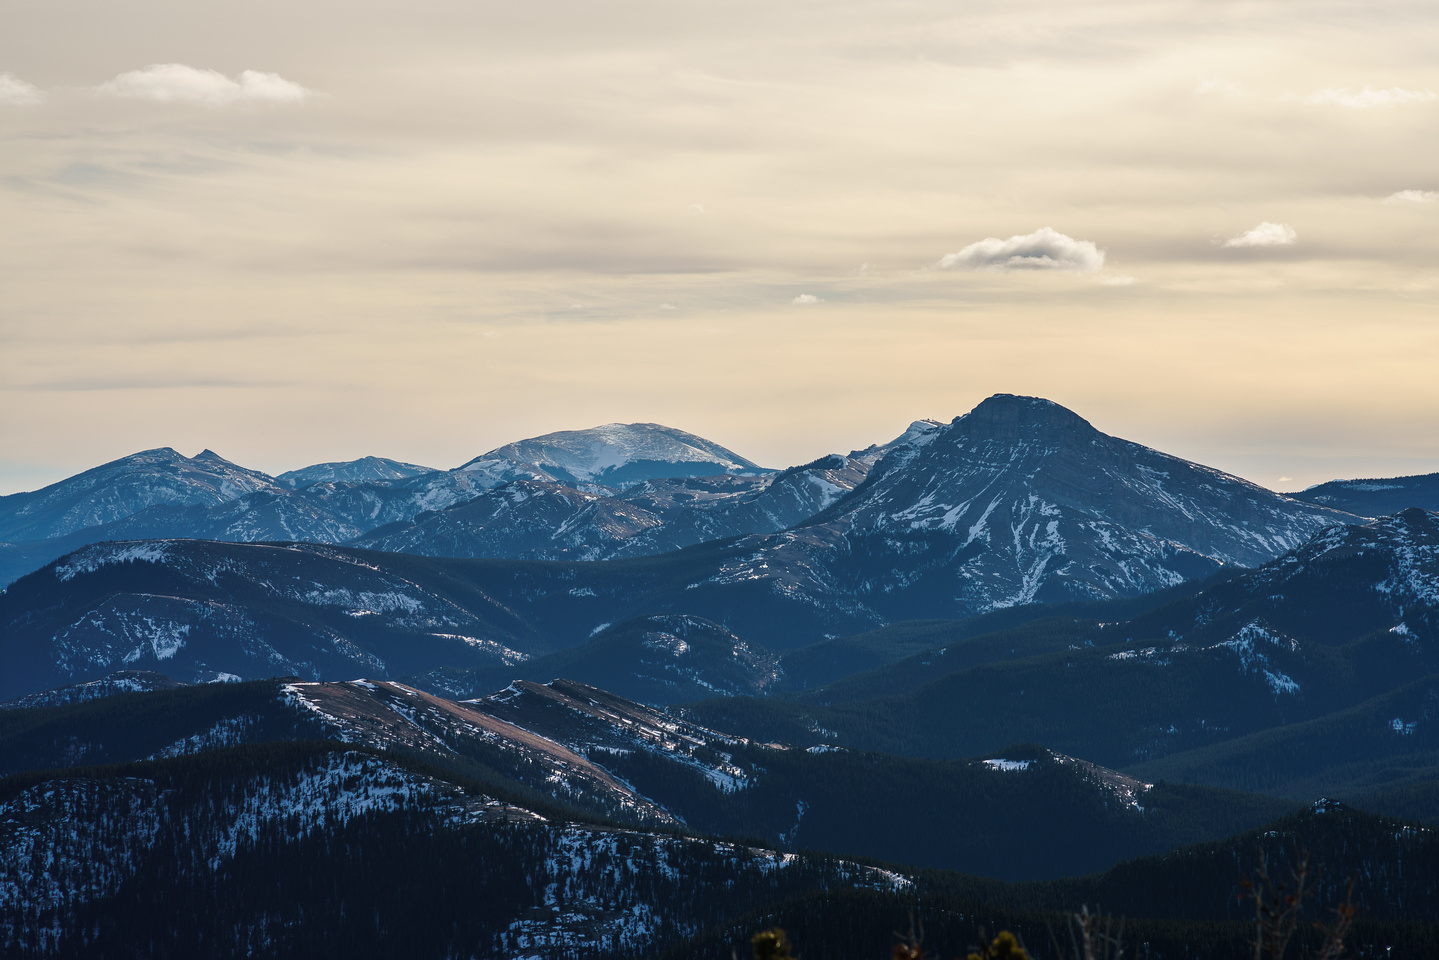 Looking even further south towards Sentinel Peak and Hailstone Butte.